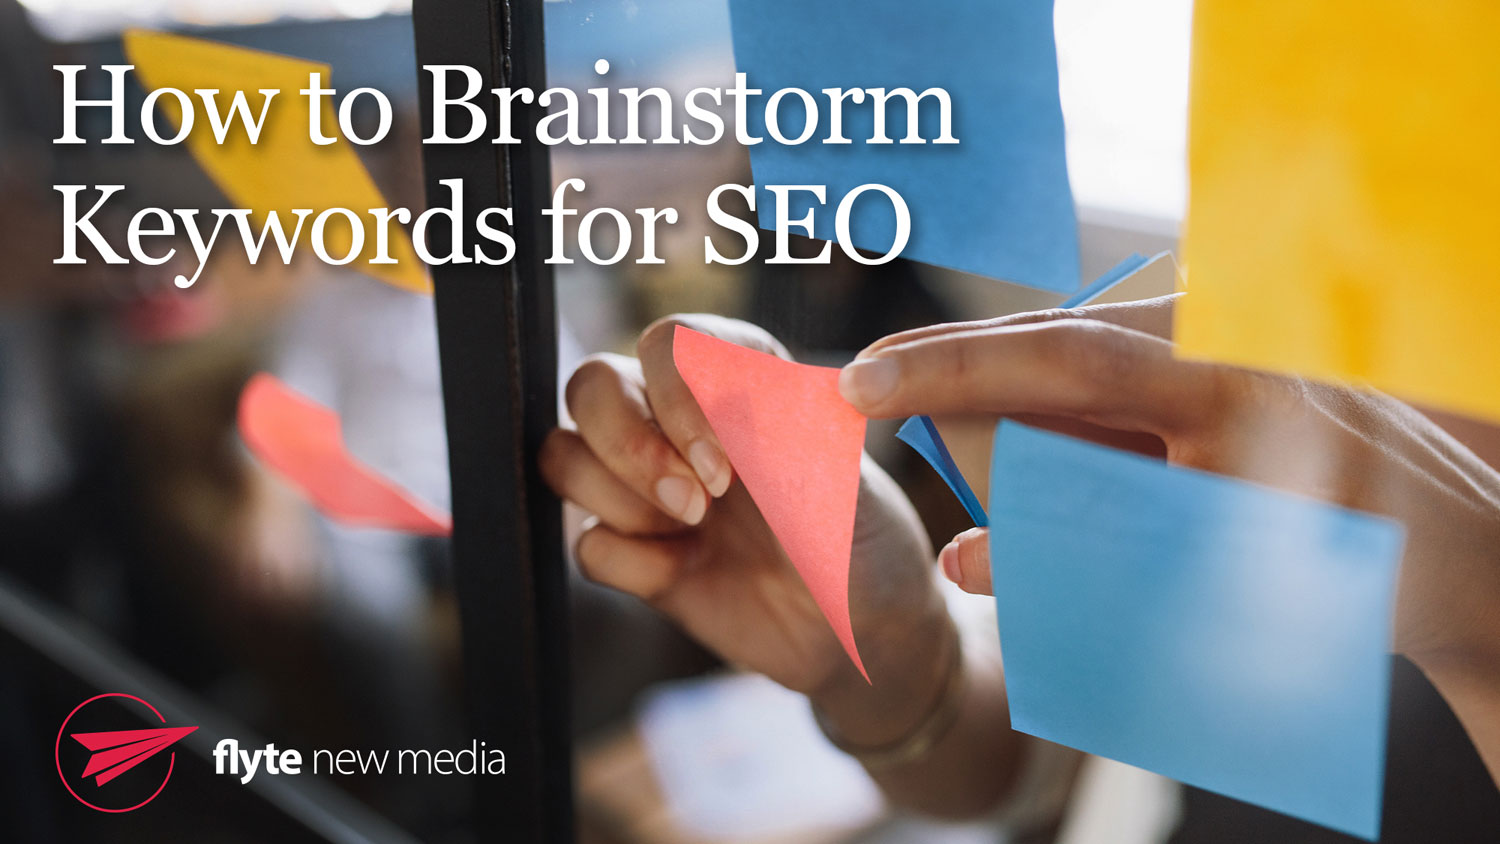 How to Brainstorm Keywords for SEO